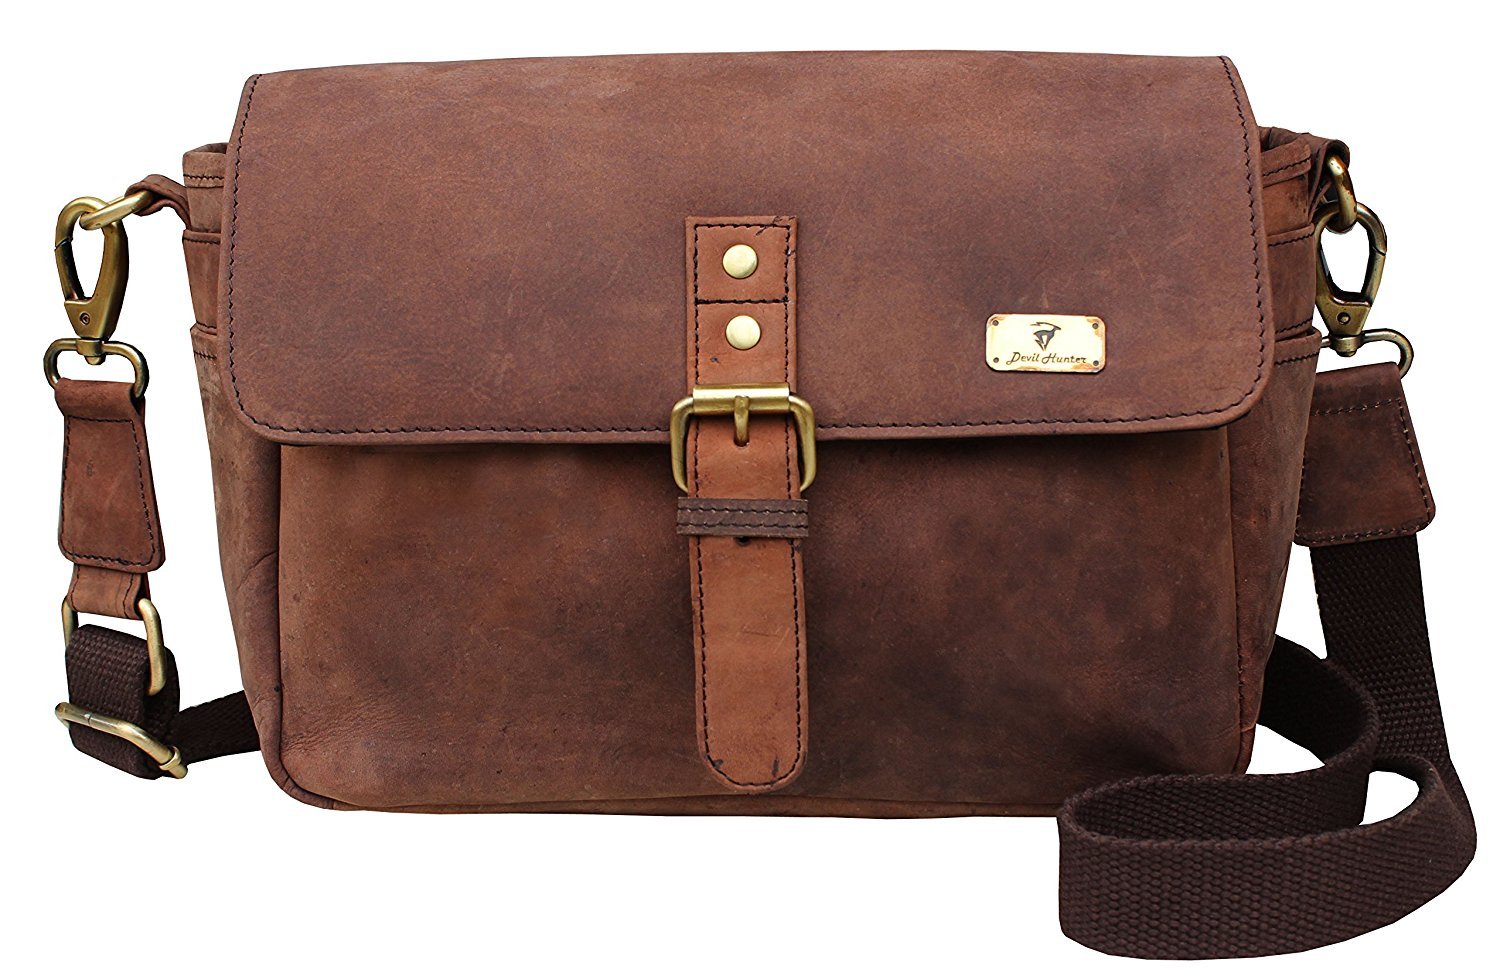 DH Handmade Vintage Style Camera Bag / Messenger / Camera Briefcase / camera Messenger Bag / dslr Bag